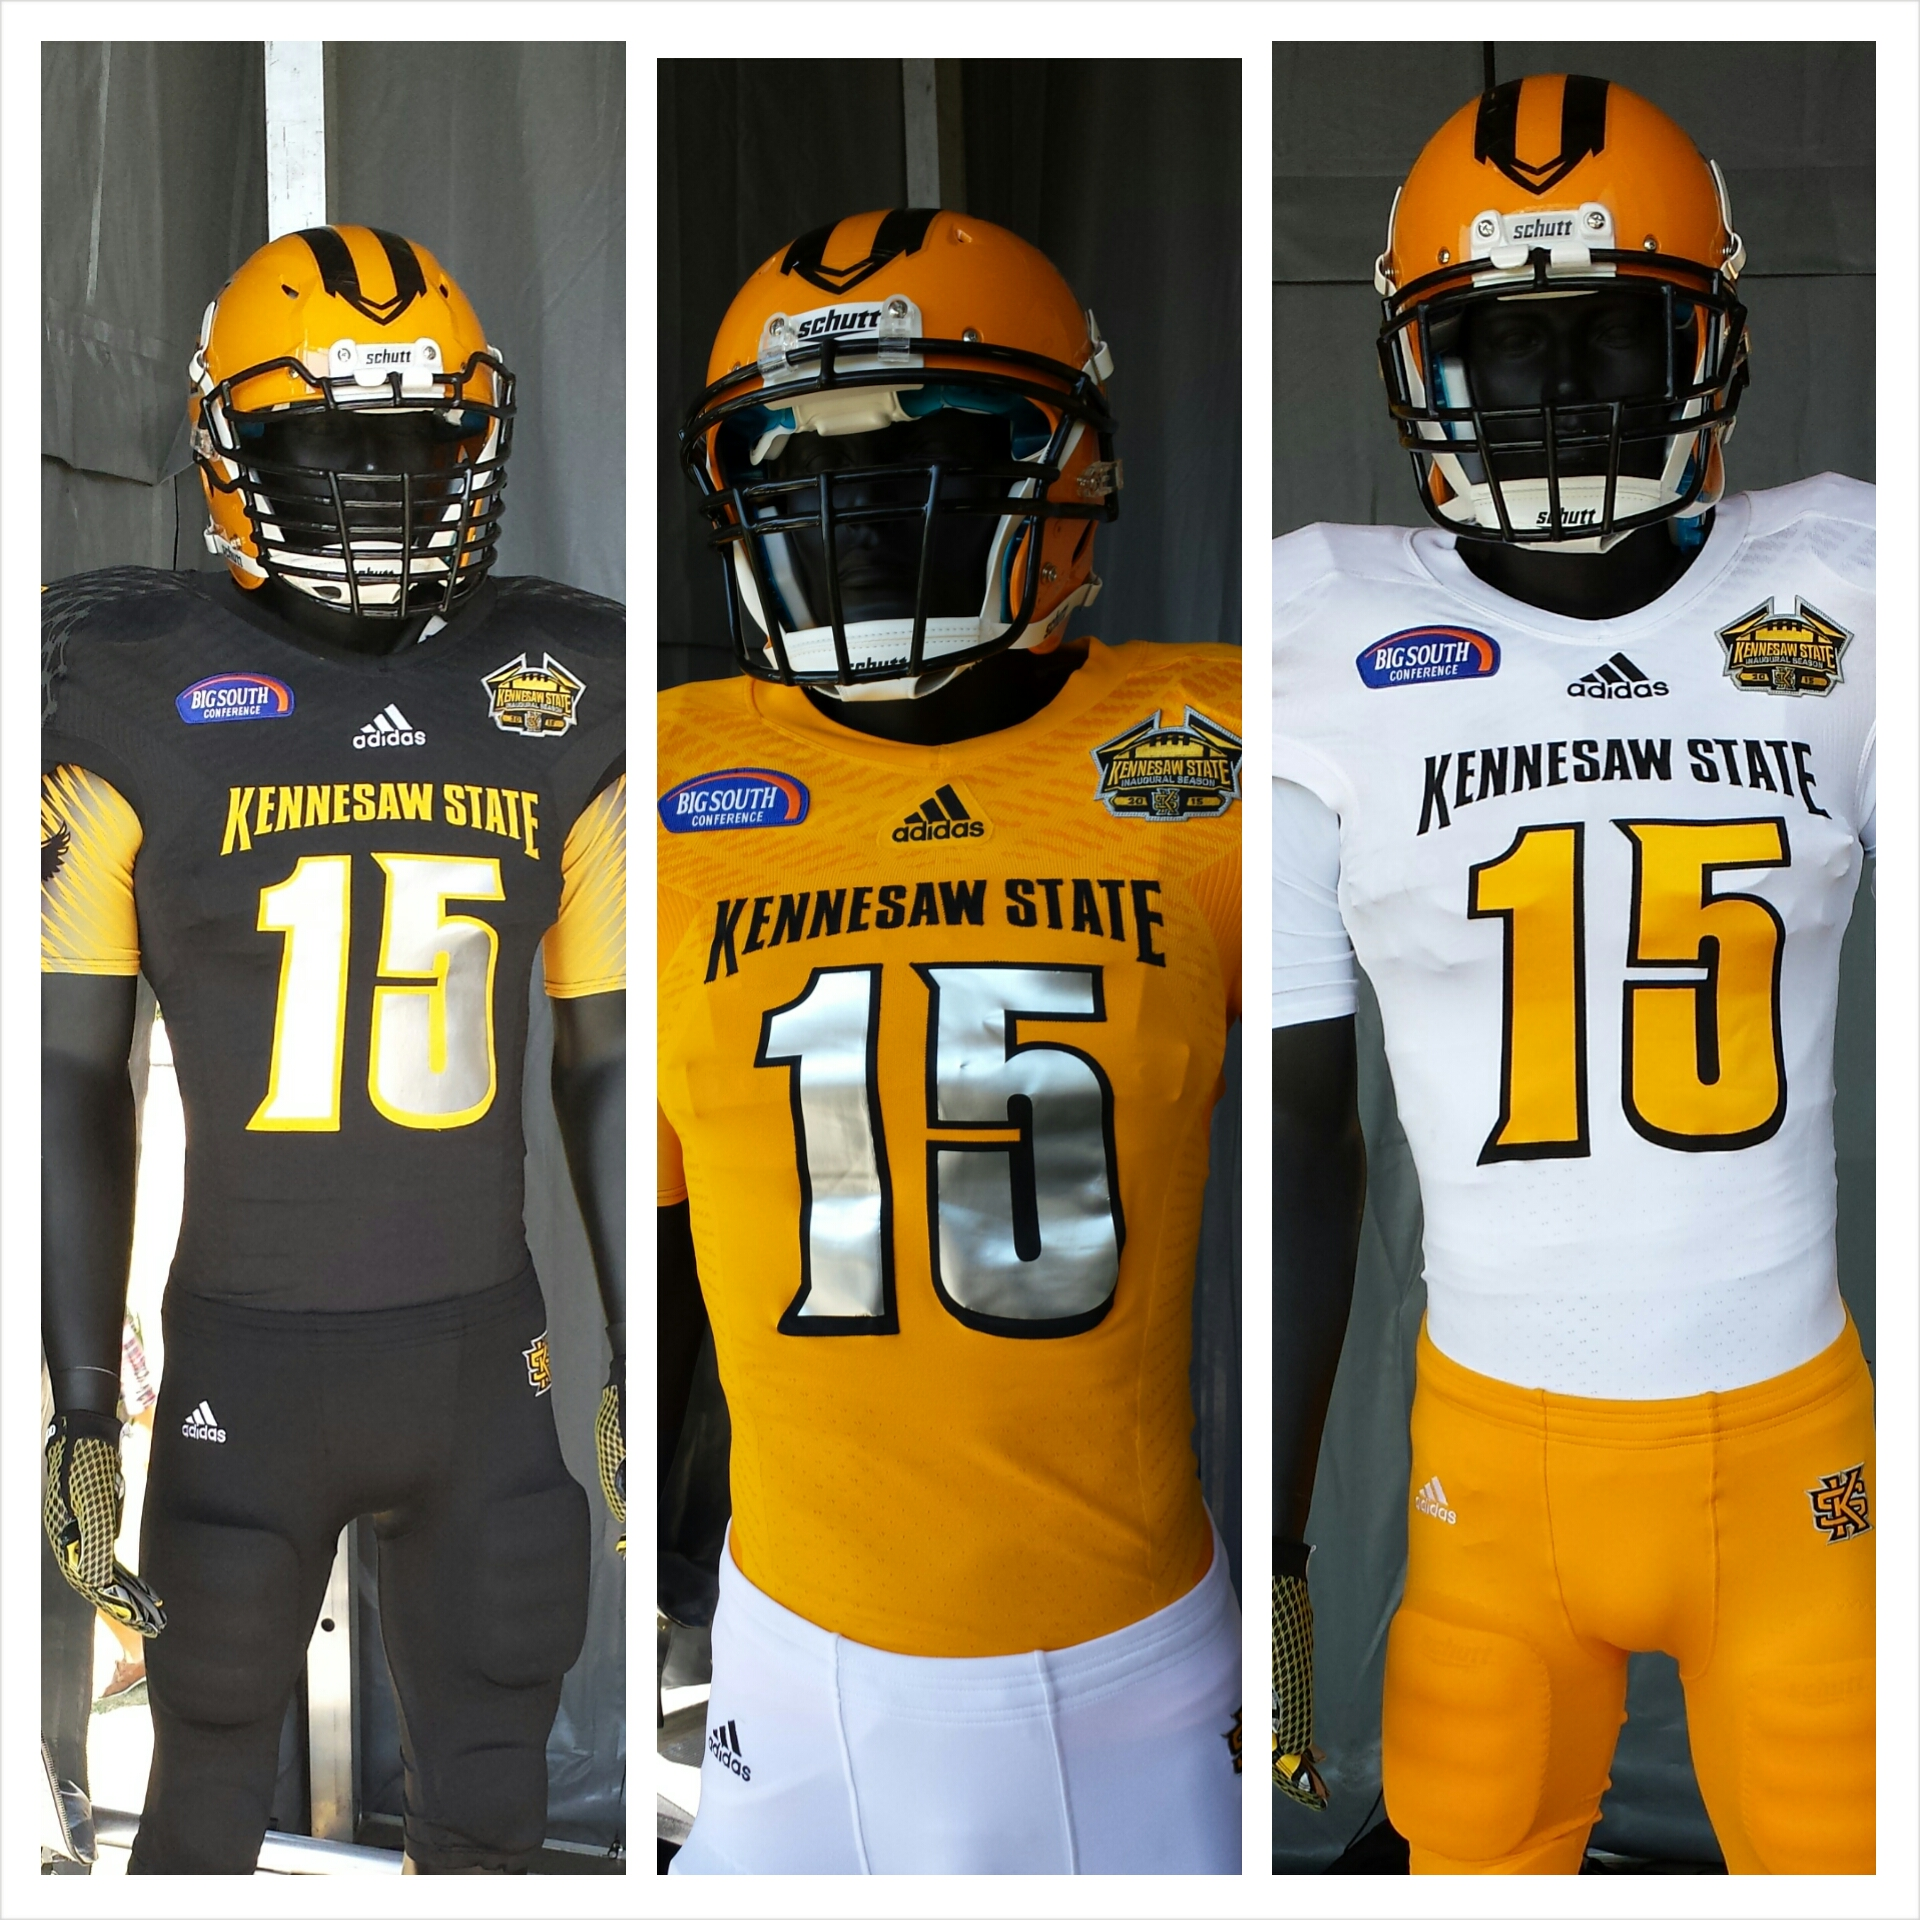 outlet store 2e779 85651 Kennesaw State Owls Football Uniforms Released | McCreary ...